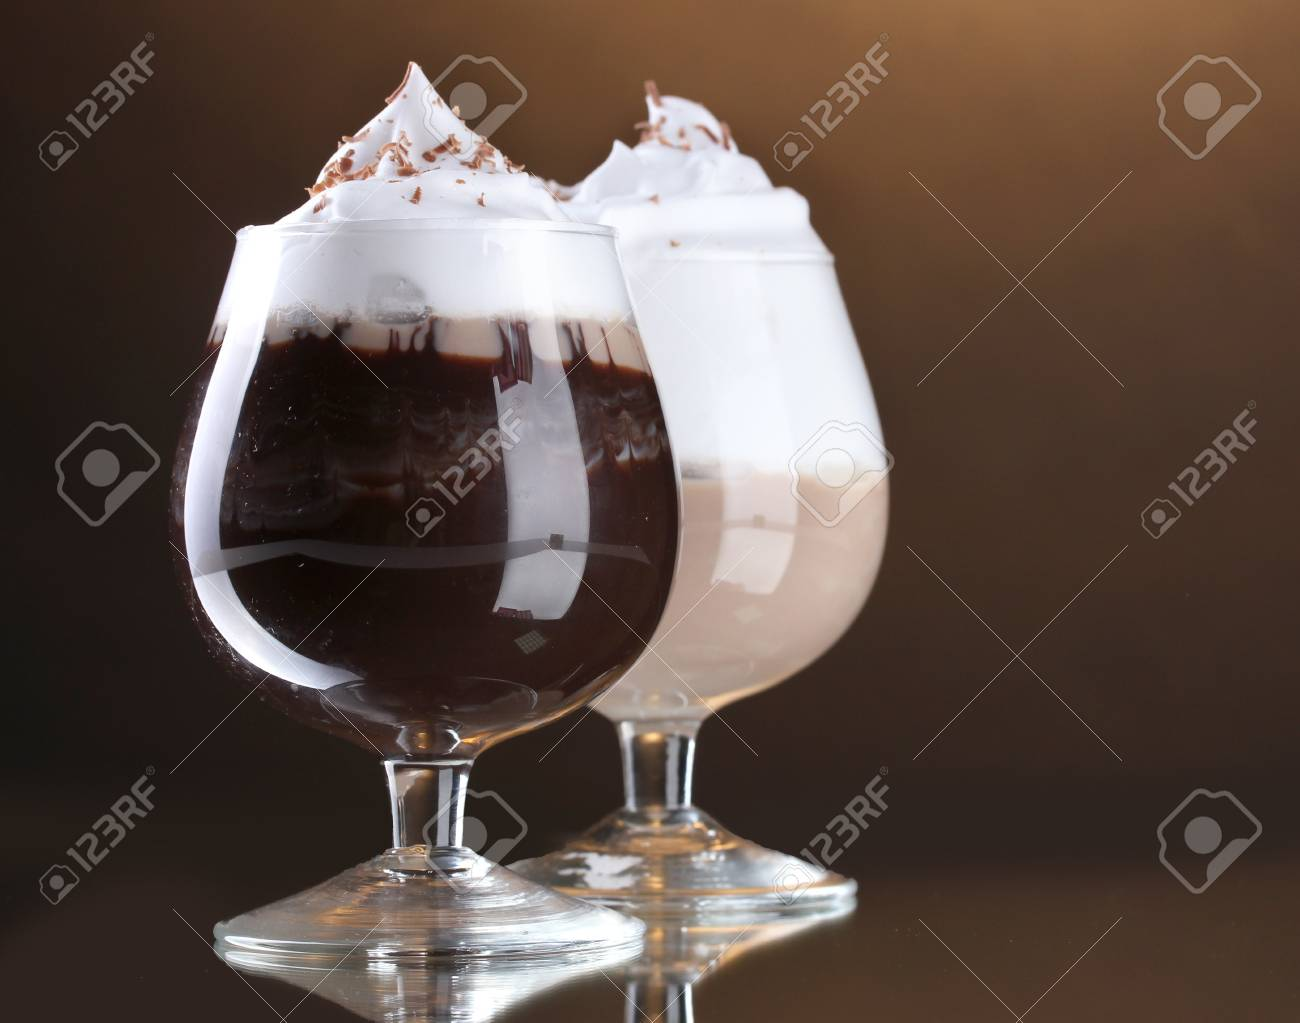 glasses of coffee cocktail on brown background Stock Photo - 13819889